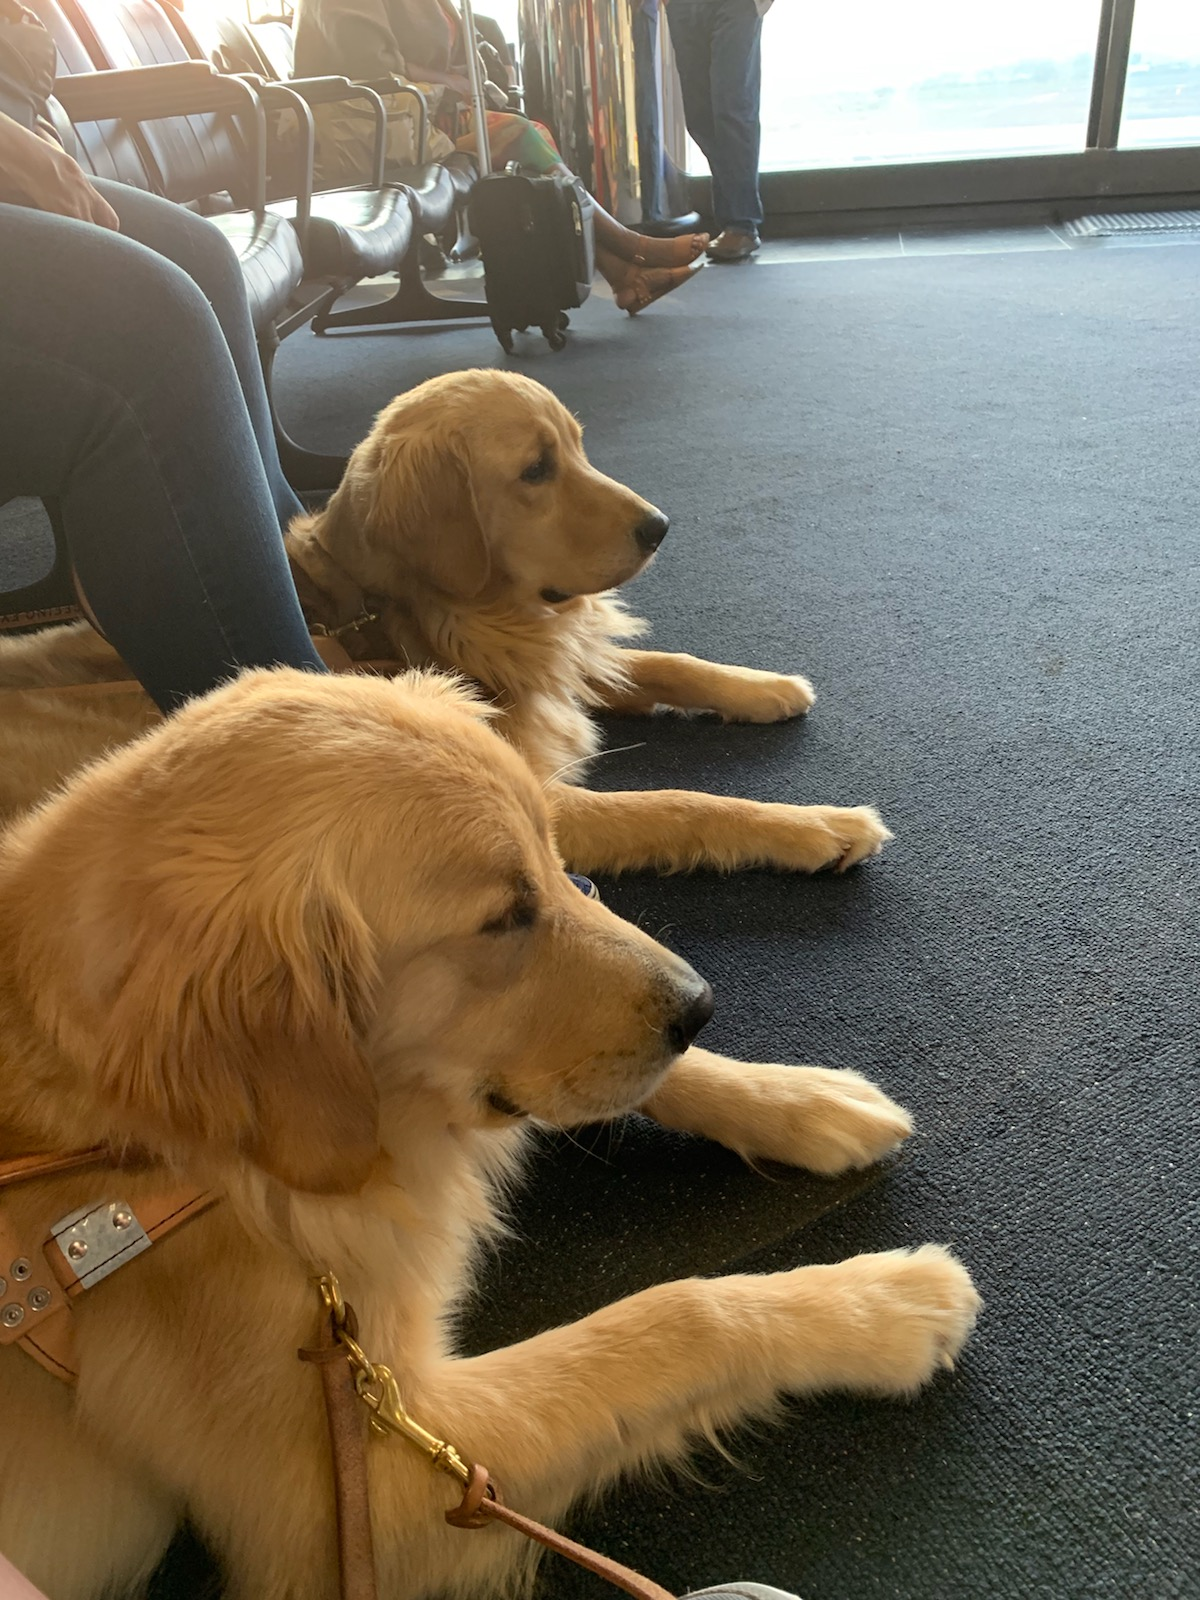 Two Seeing Eye dogs, both golden retrievers, rest under their handlers' chairs in the seating area by an airport gate.